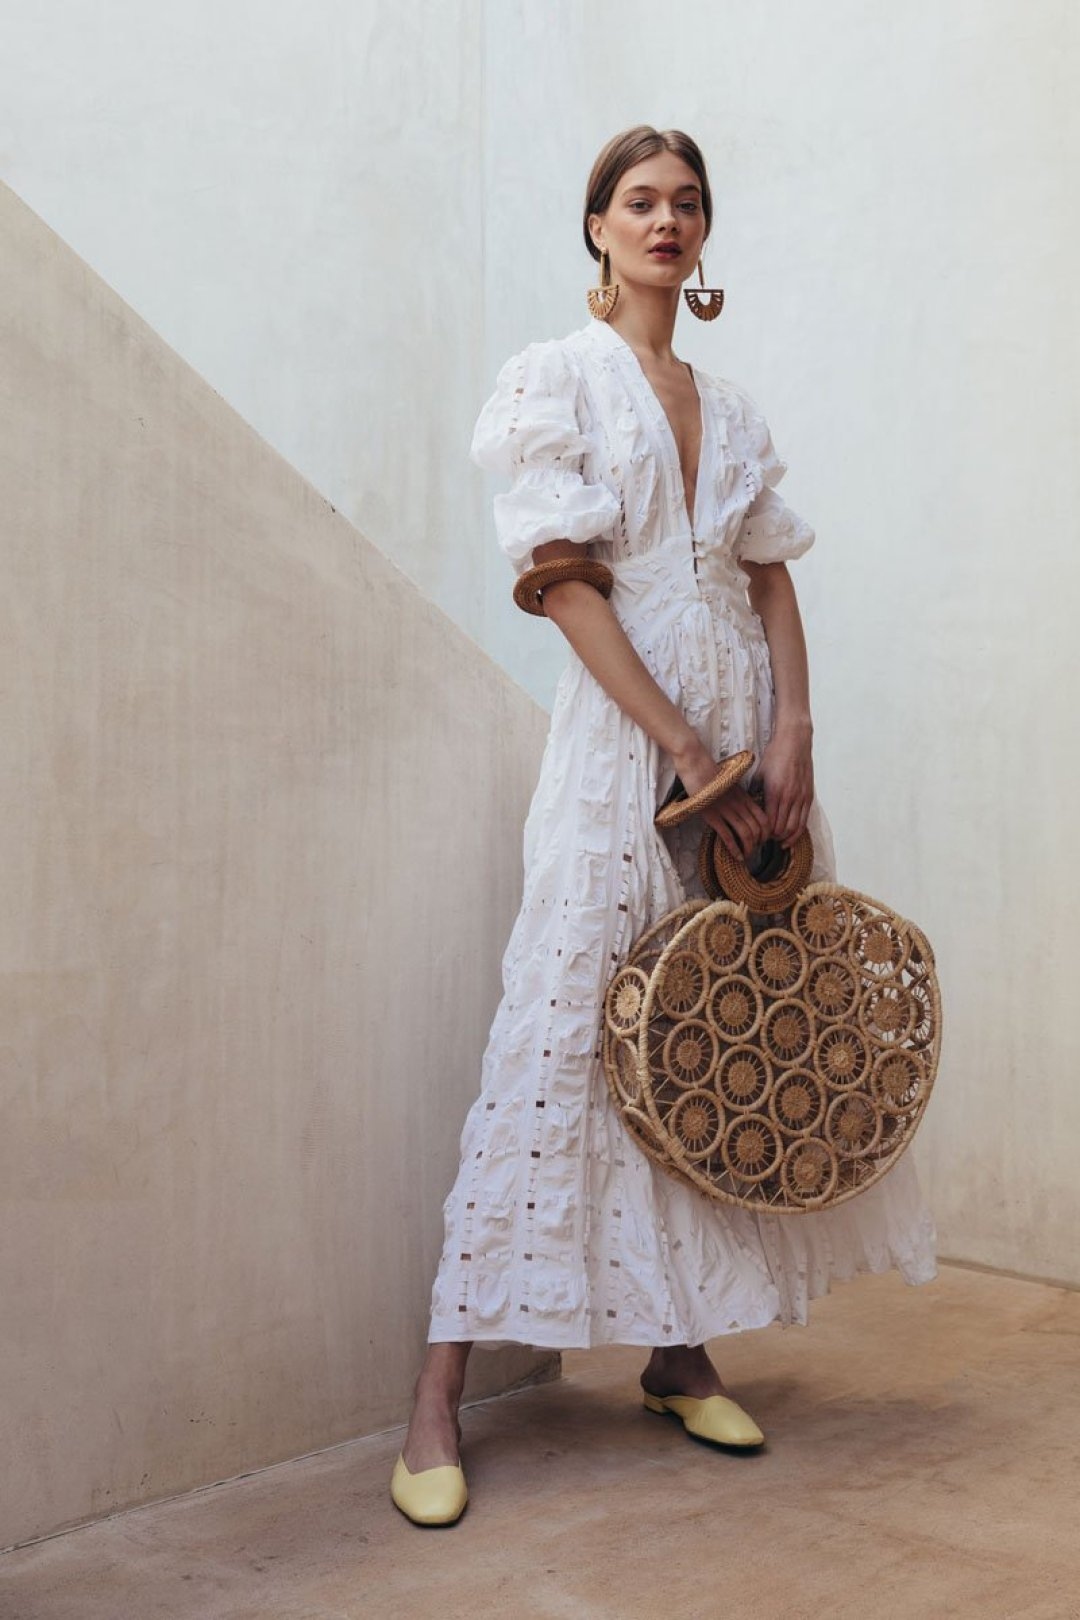 white dress inspiration, basket bags, wood accesories